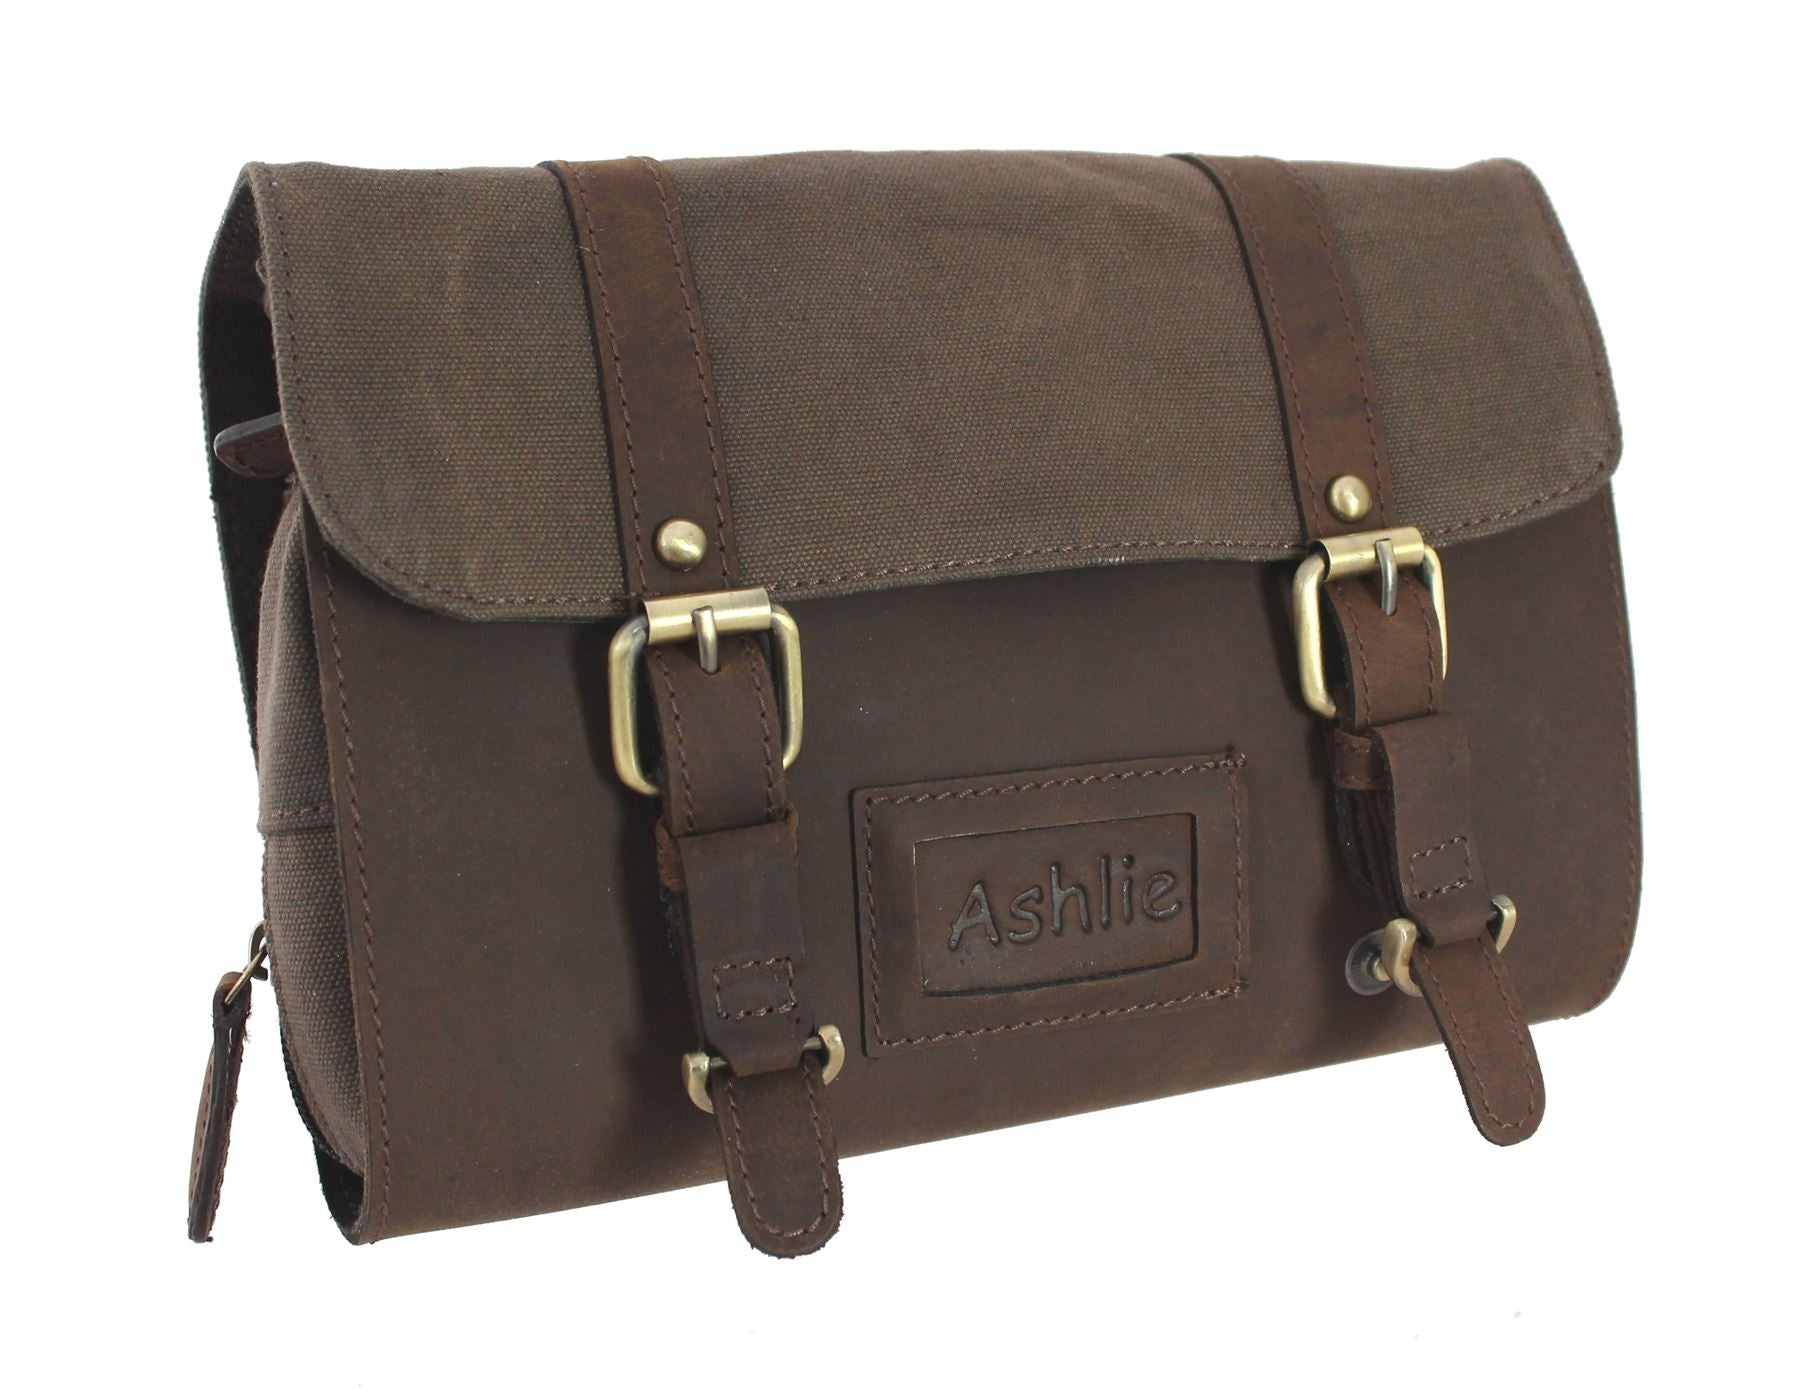 Ashlie Leather Oiled Leather and Fabric Gents Hanging Washbag 7010 ... 0ca4880d0f9ce